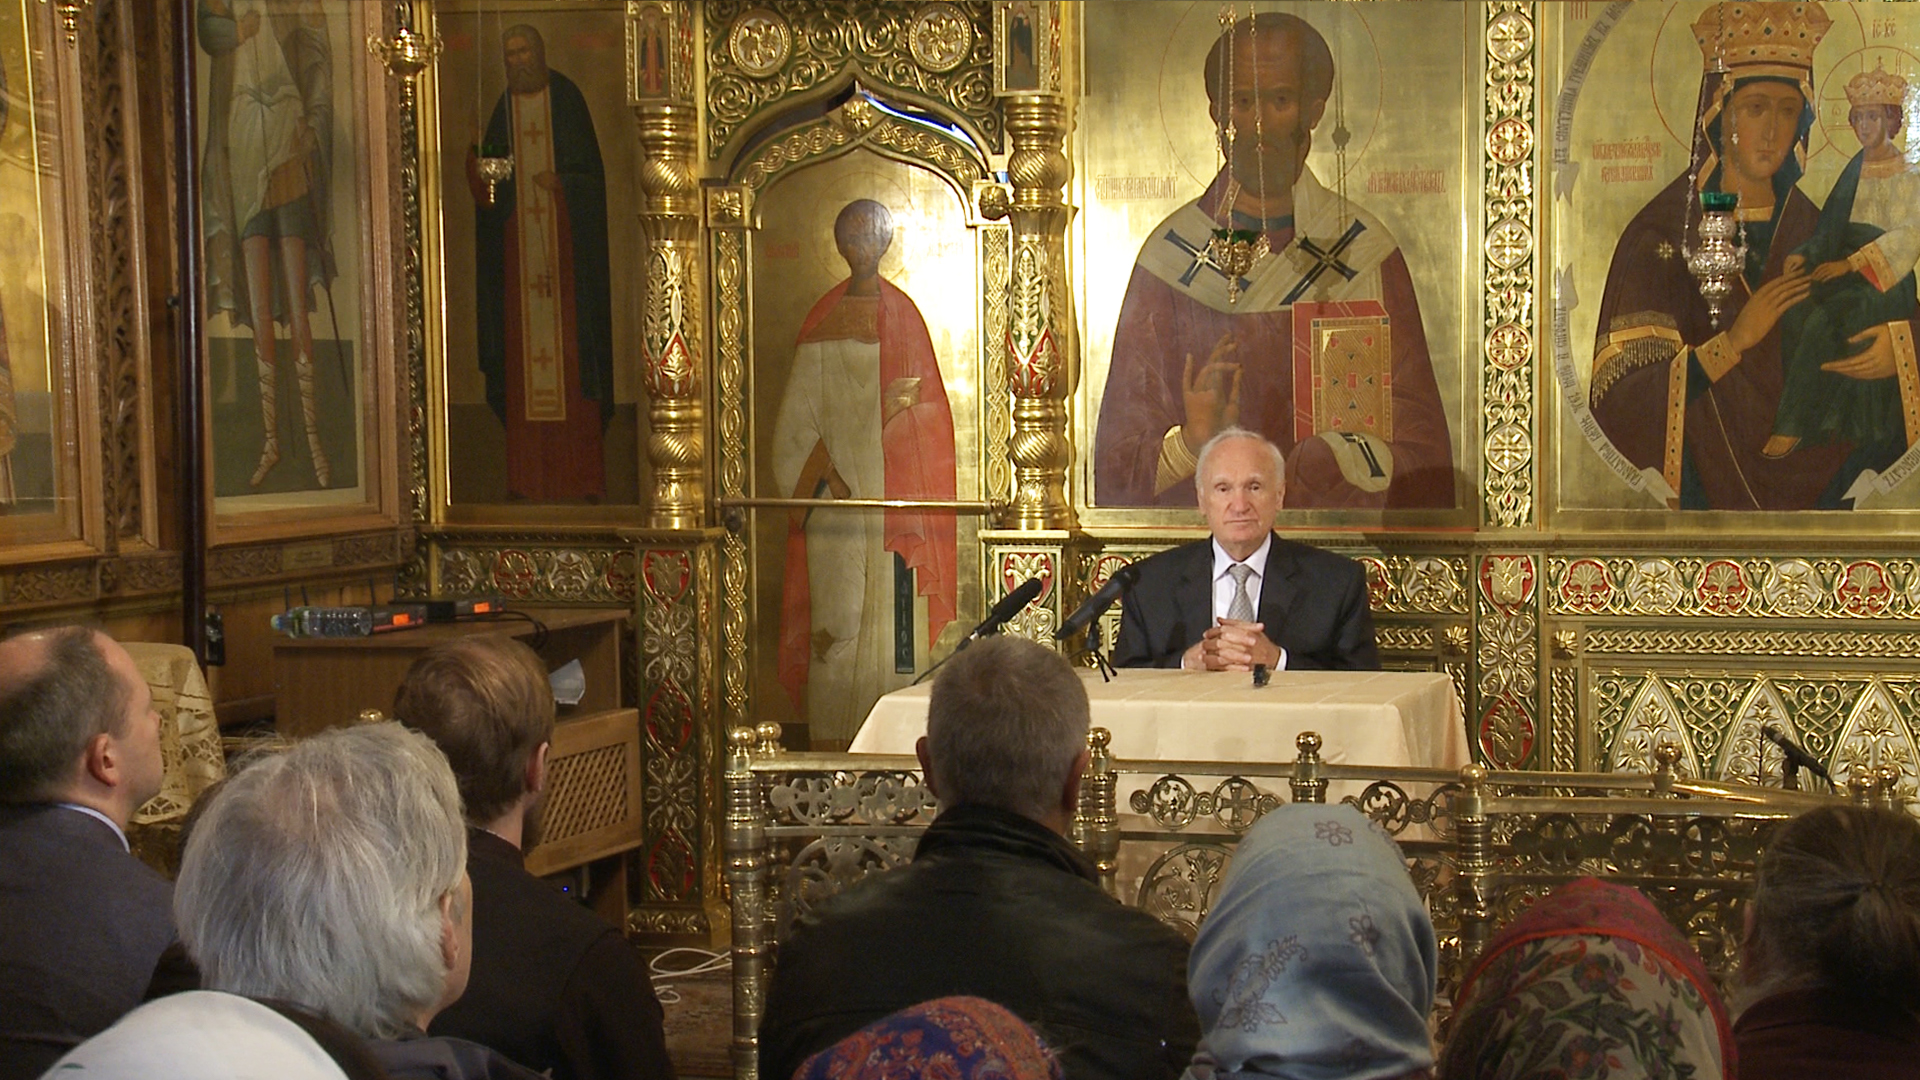 Orthodoxy and catholicism: faith and life (Moscow, 2016)